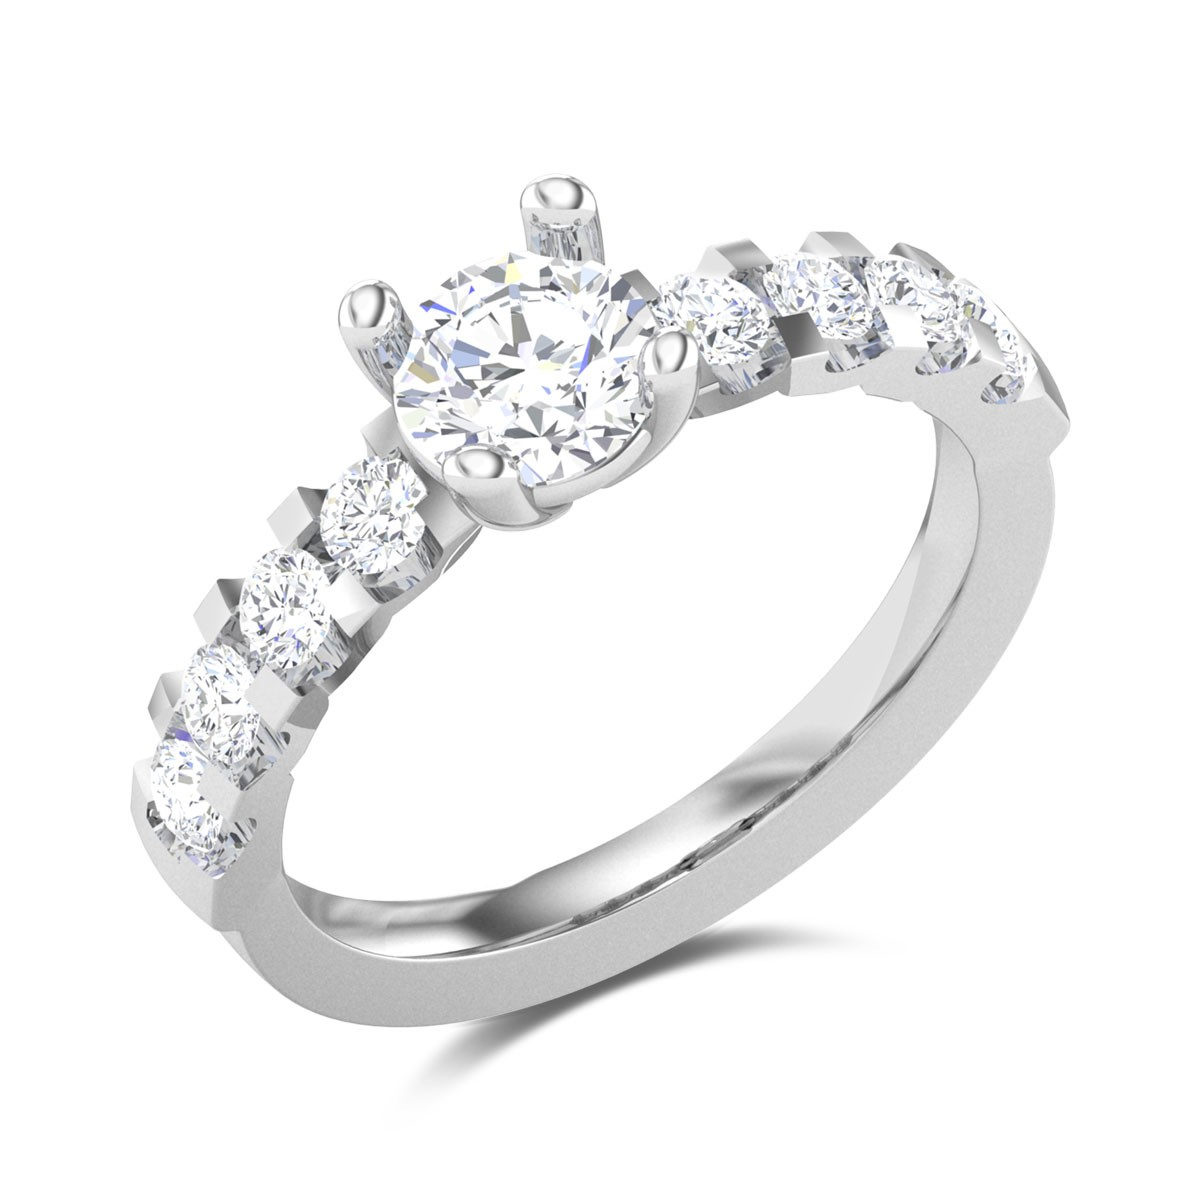 Chaaru 4 Prong Solitaire Ring